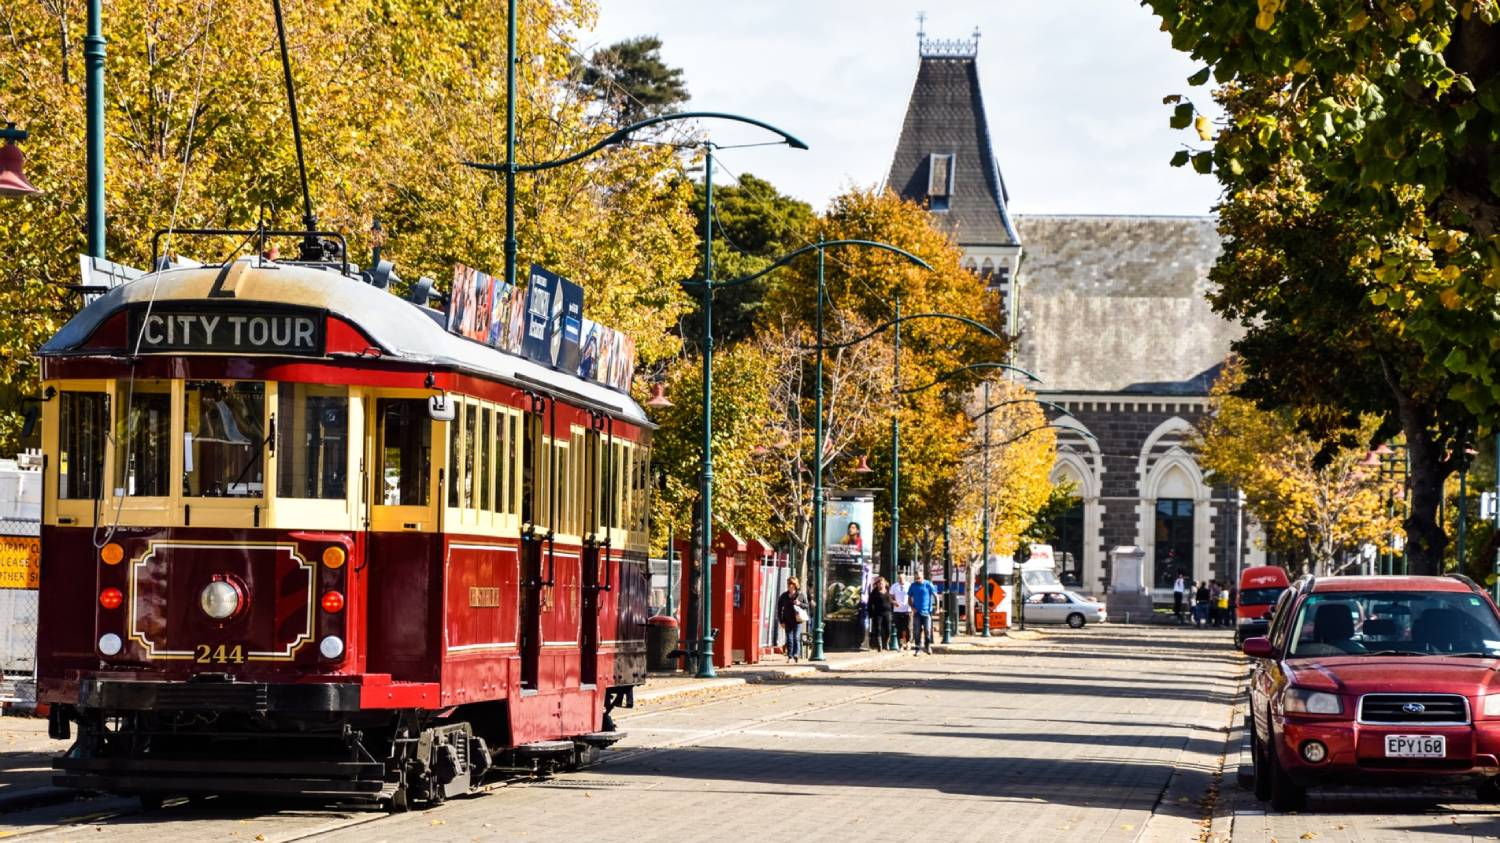 Christchurch Tramway - Things To Do In Christchurch